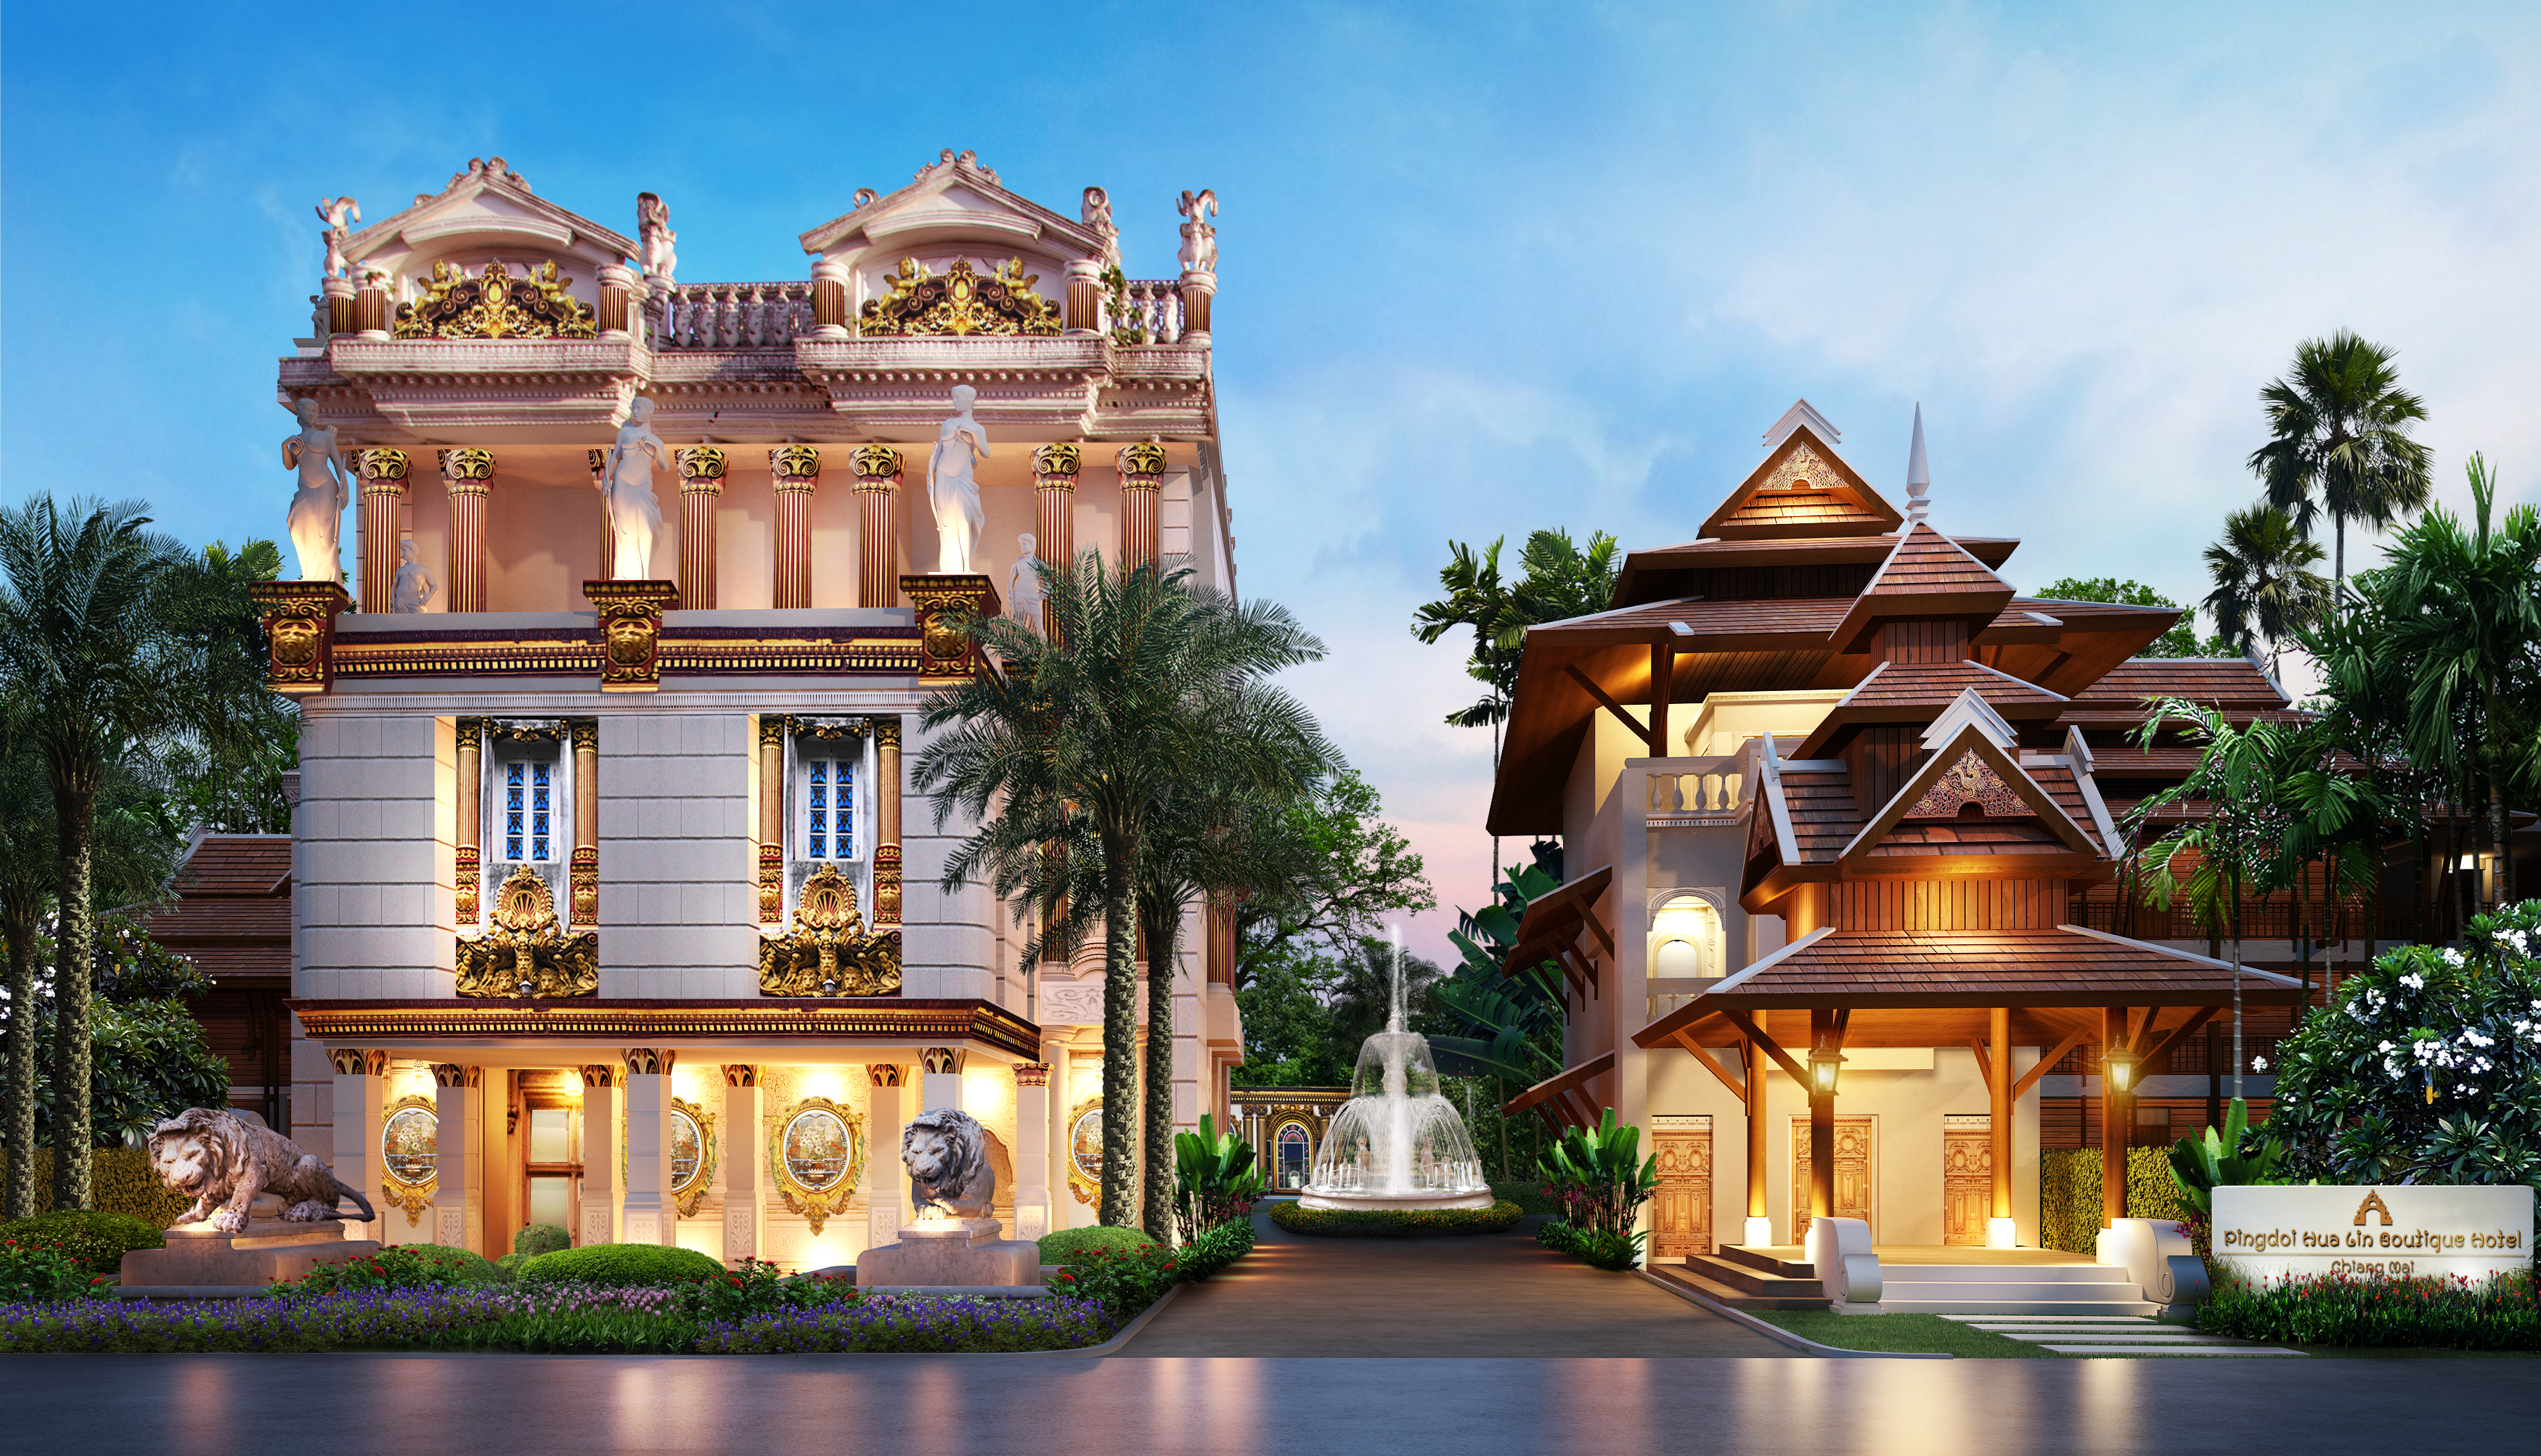 Hotel hotel entrance final pingdoi hualin boutique hotel for Boutique hotel 2016